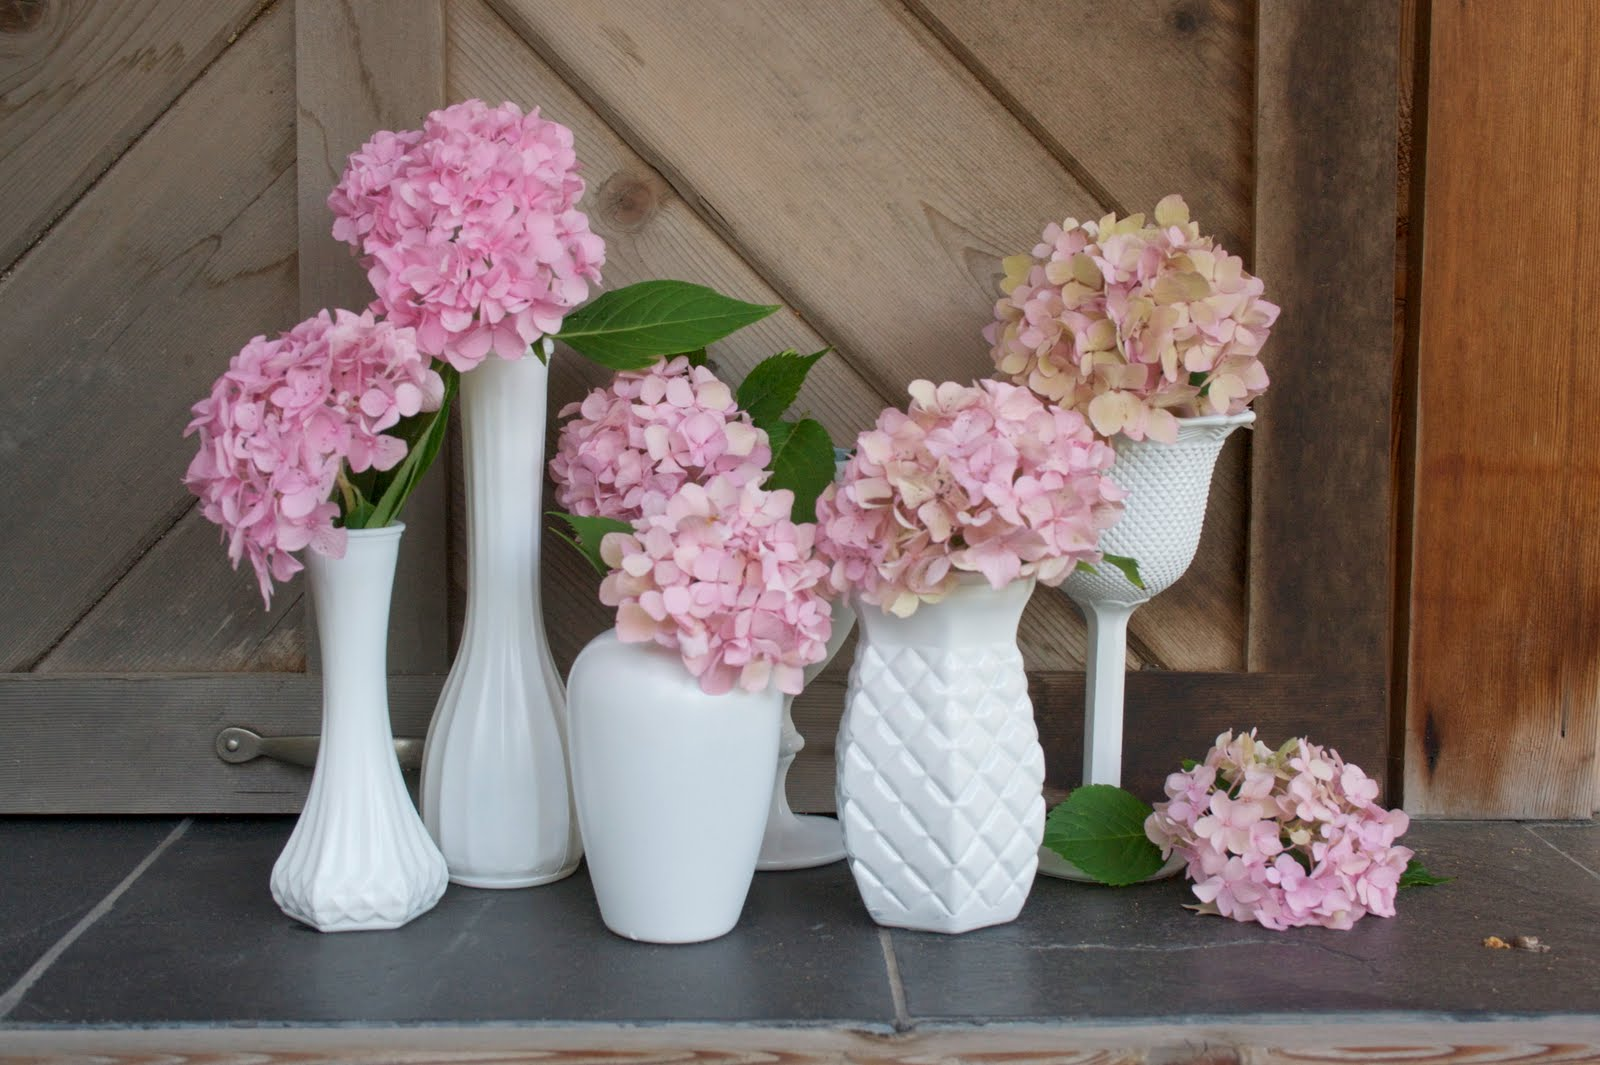 Diy create your own milk glass vases for cheap better housekeeper diy create your own milk glass vases for cheap spray paint thrift store budget reviewsmspy